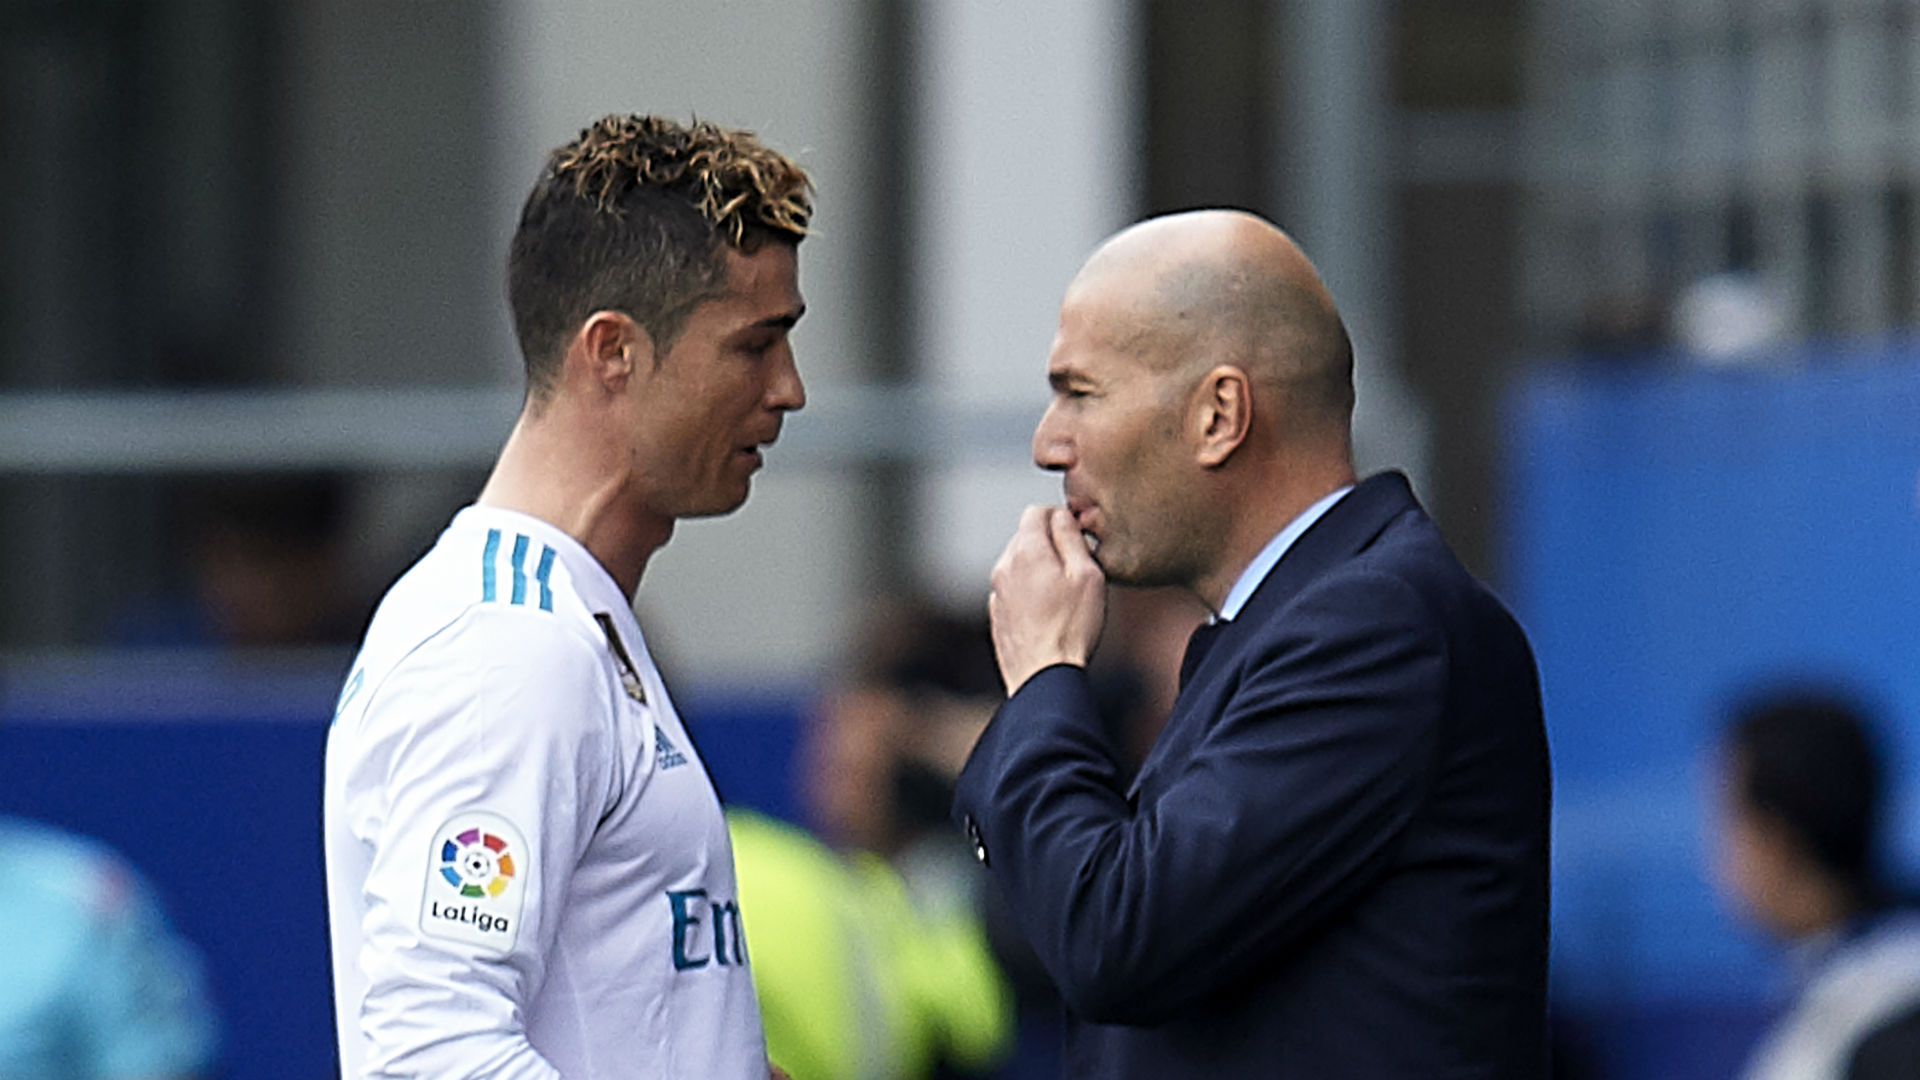 Zidane wanted to keep Ronaldo, claims former Real Madrid president Calderon